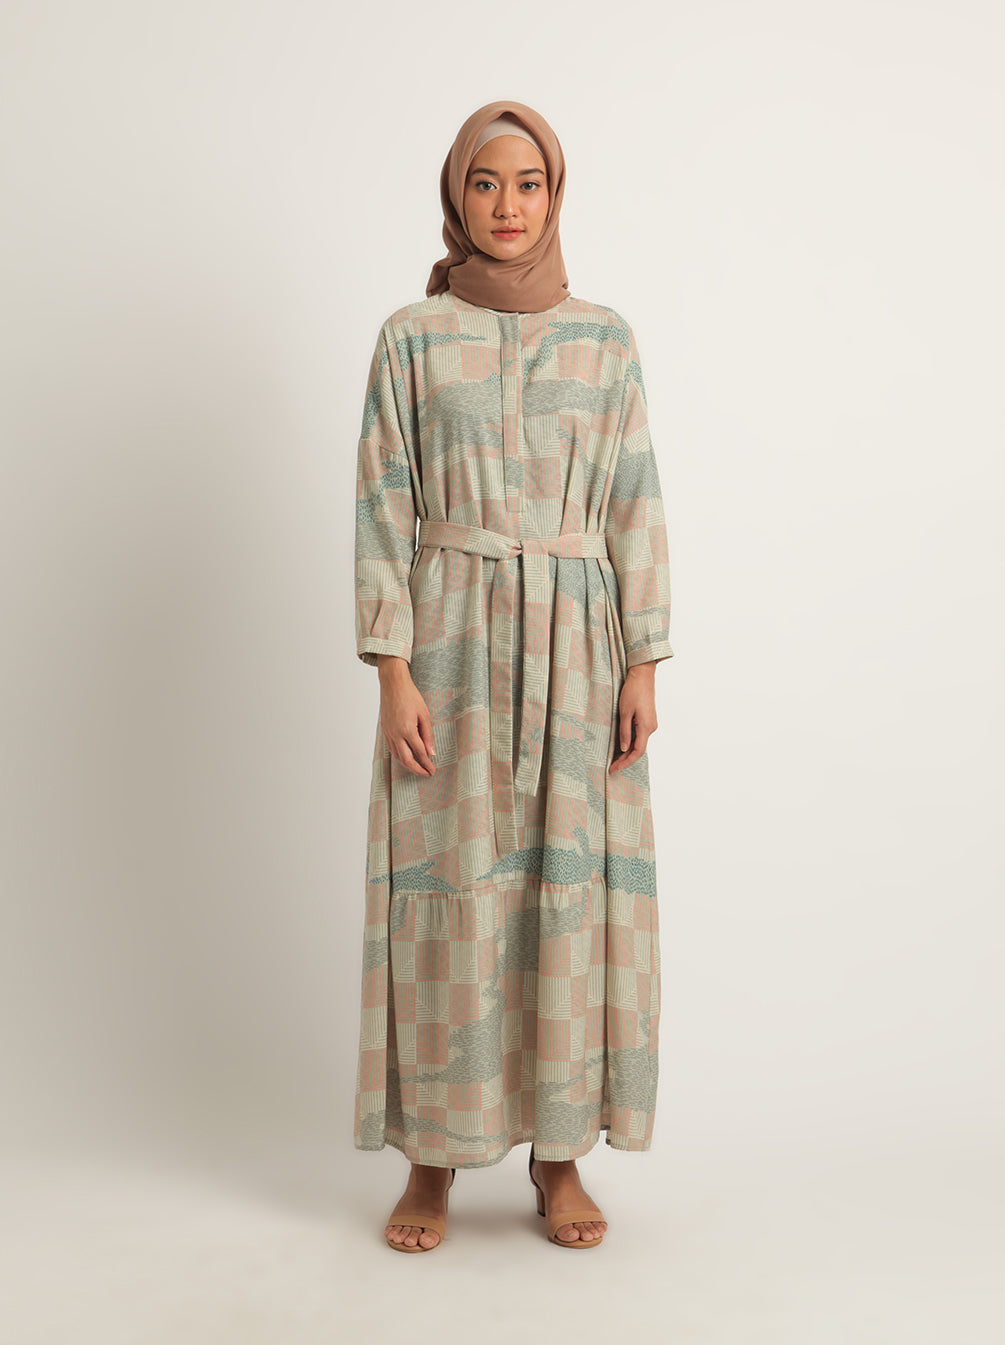 MEANA DRESS DUSTY BLUE